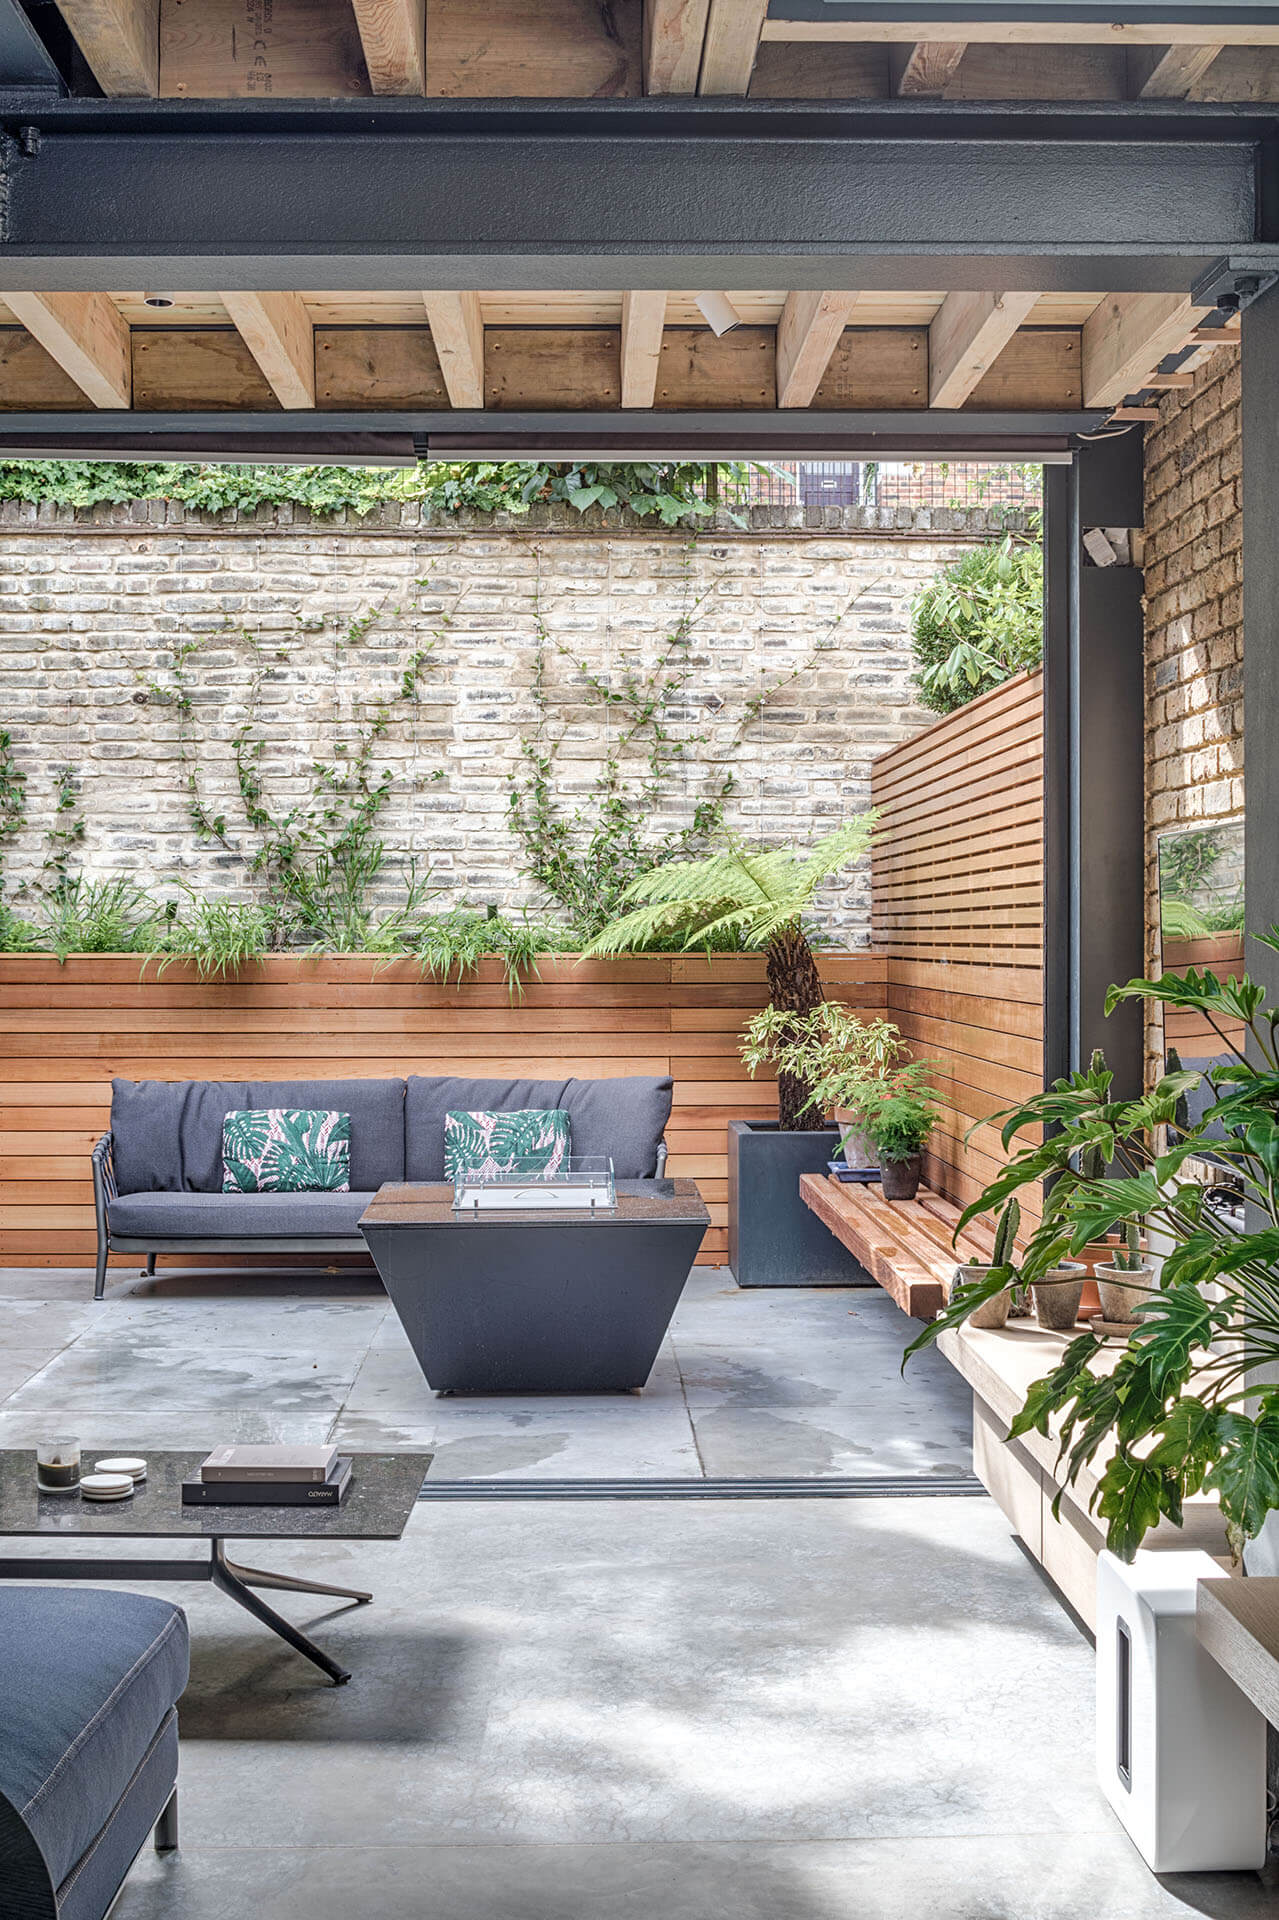 Grand Grey Shaker Kitchen with living area opening onto the garden with slatted wooden planters and outdoor seating